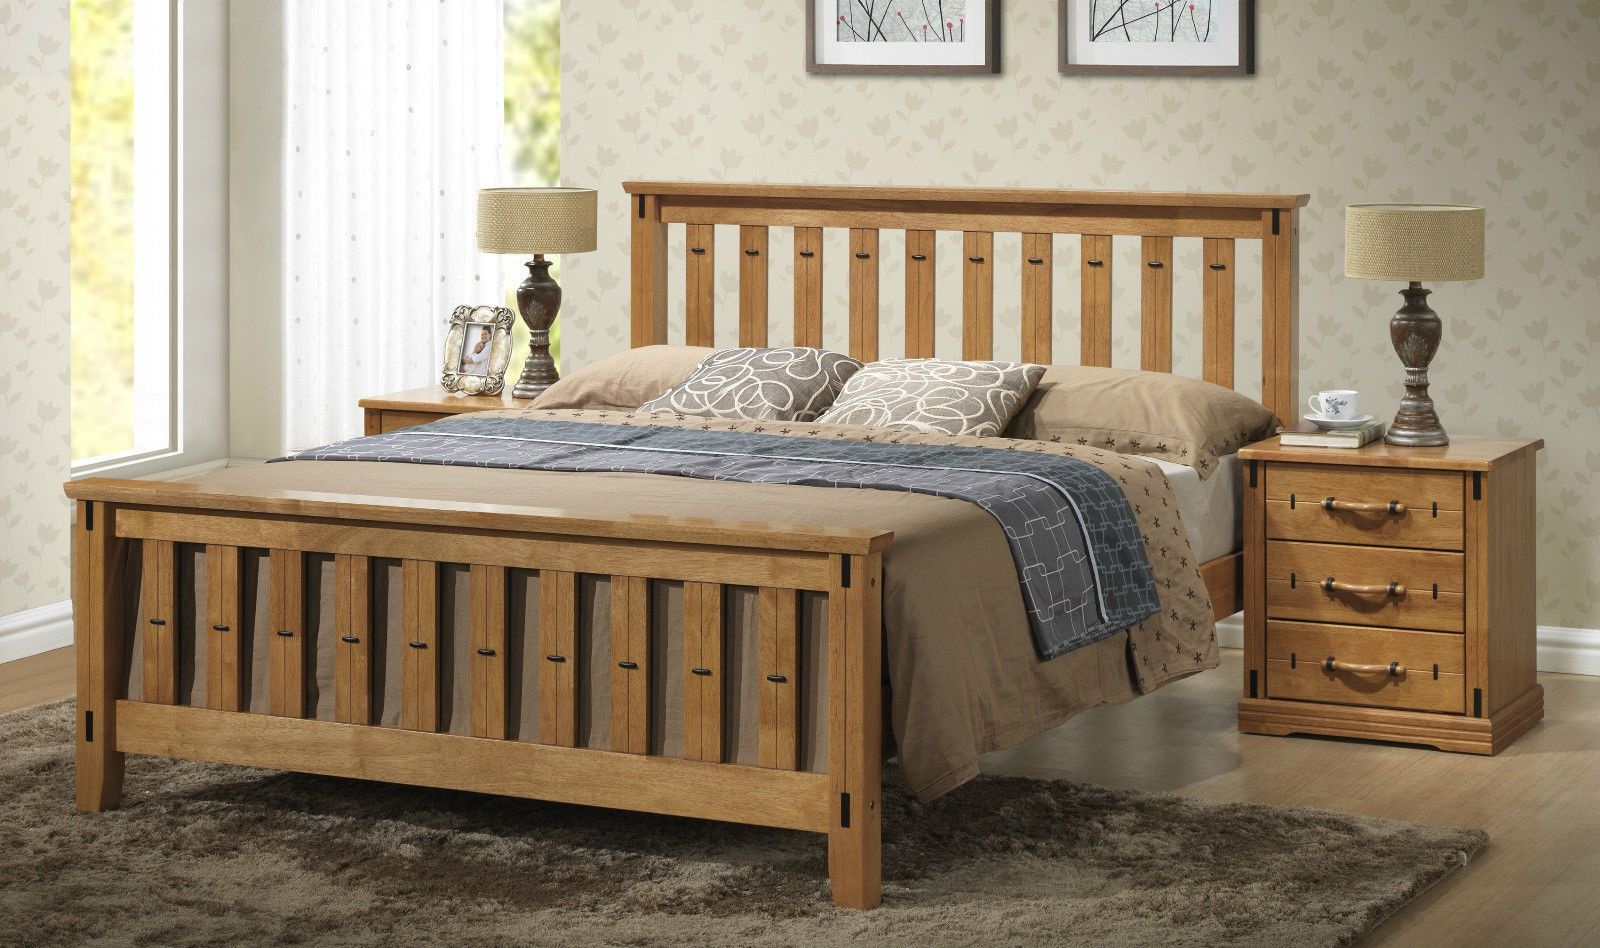 Shaker Style Double Bed Sofia Traditional Shaker Style Wooden Bed Frame 4ft6